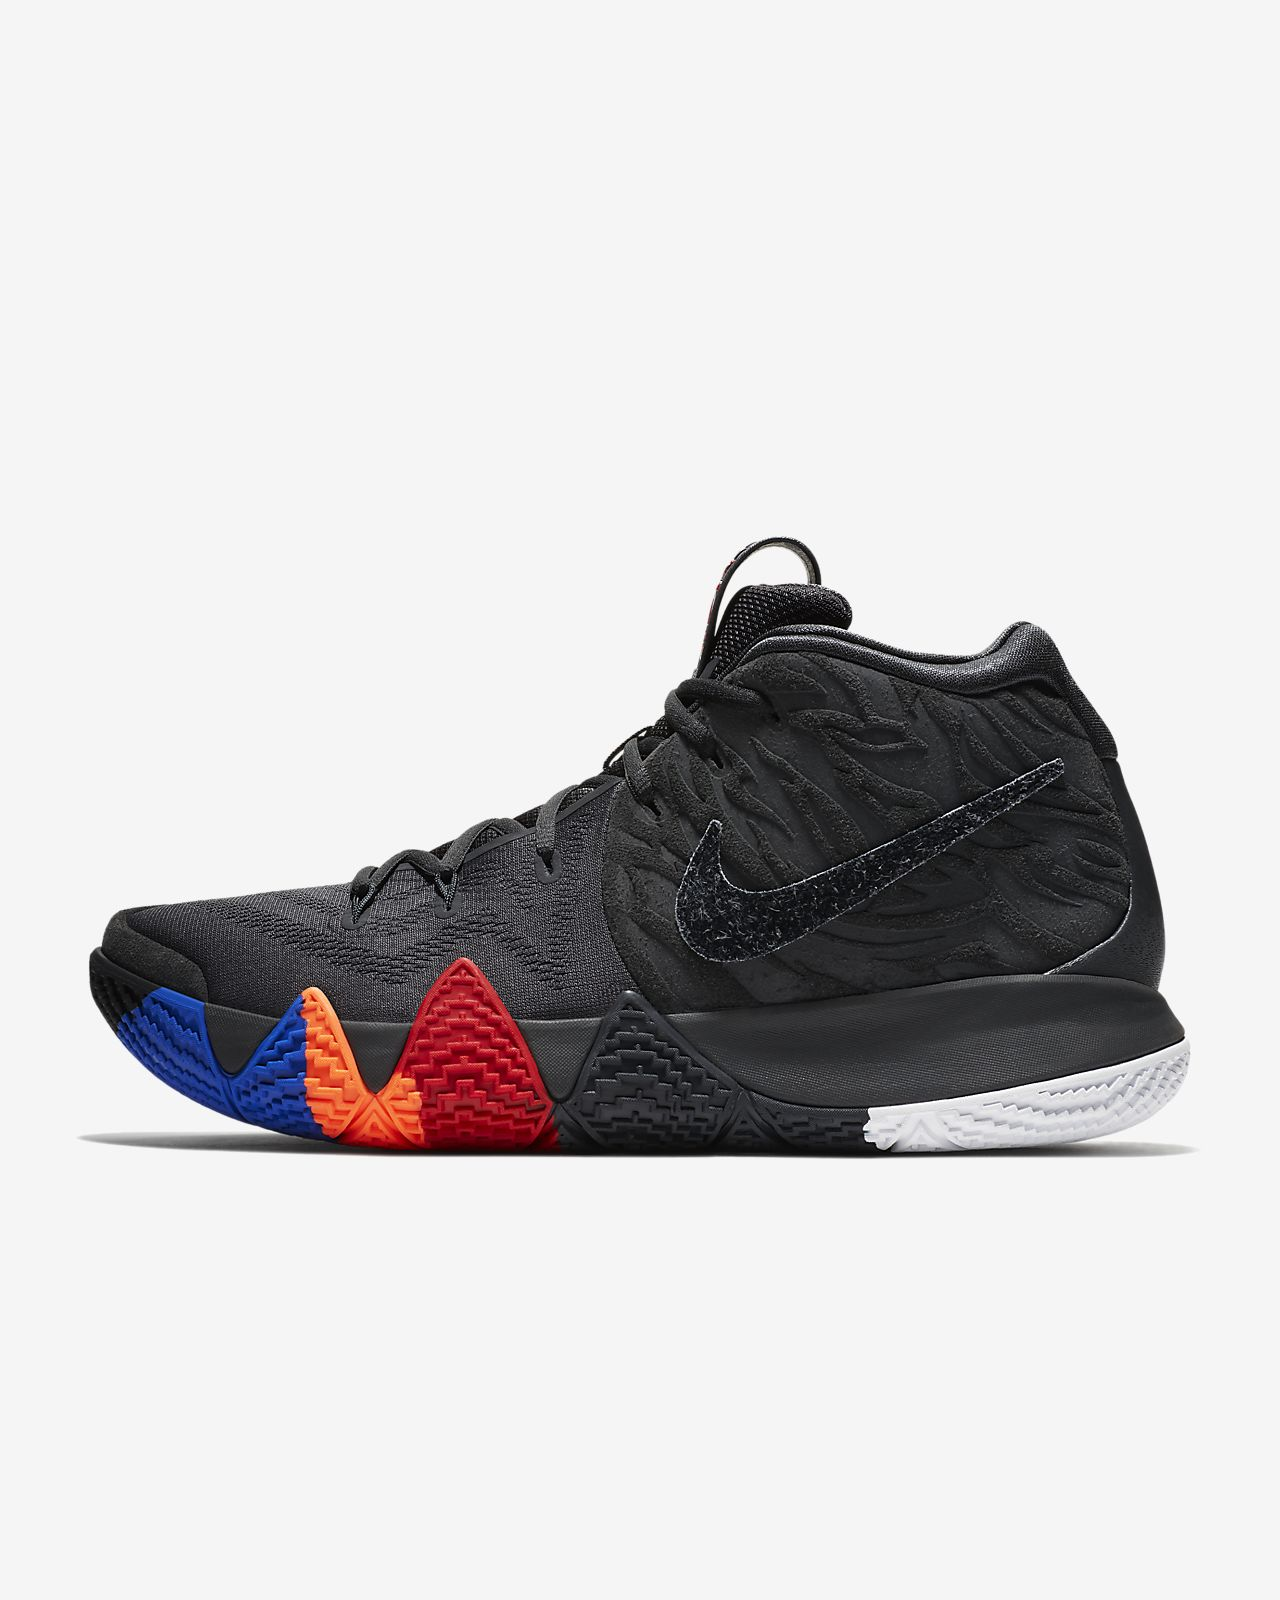 d68baf377c59 Low Resolution Kyrie 4 Basketball Shoe Kyrie 4 Basketball Shoe